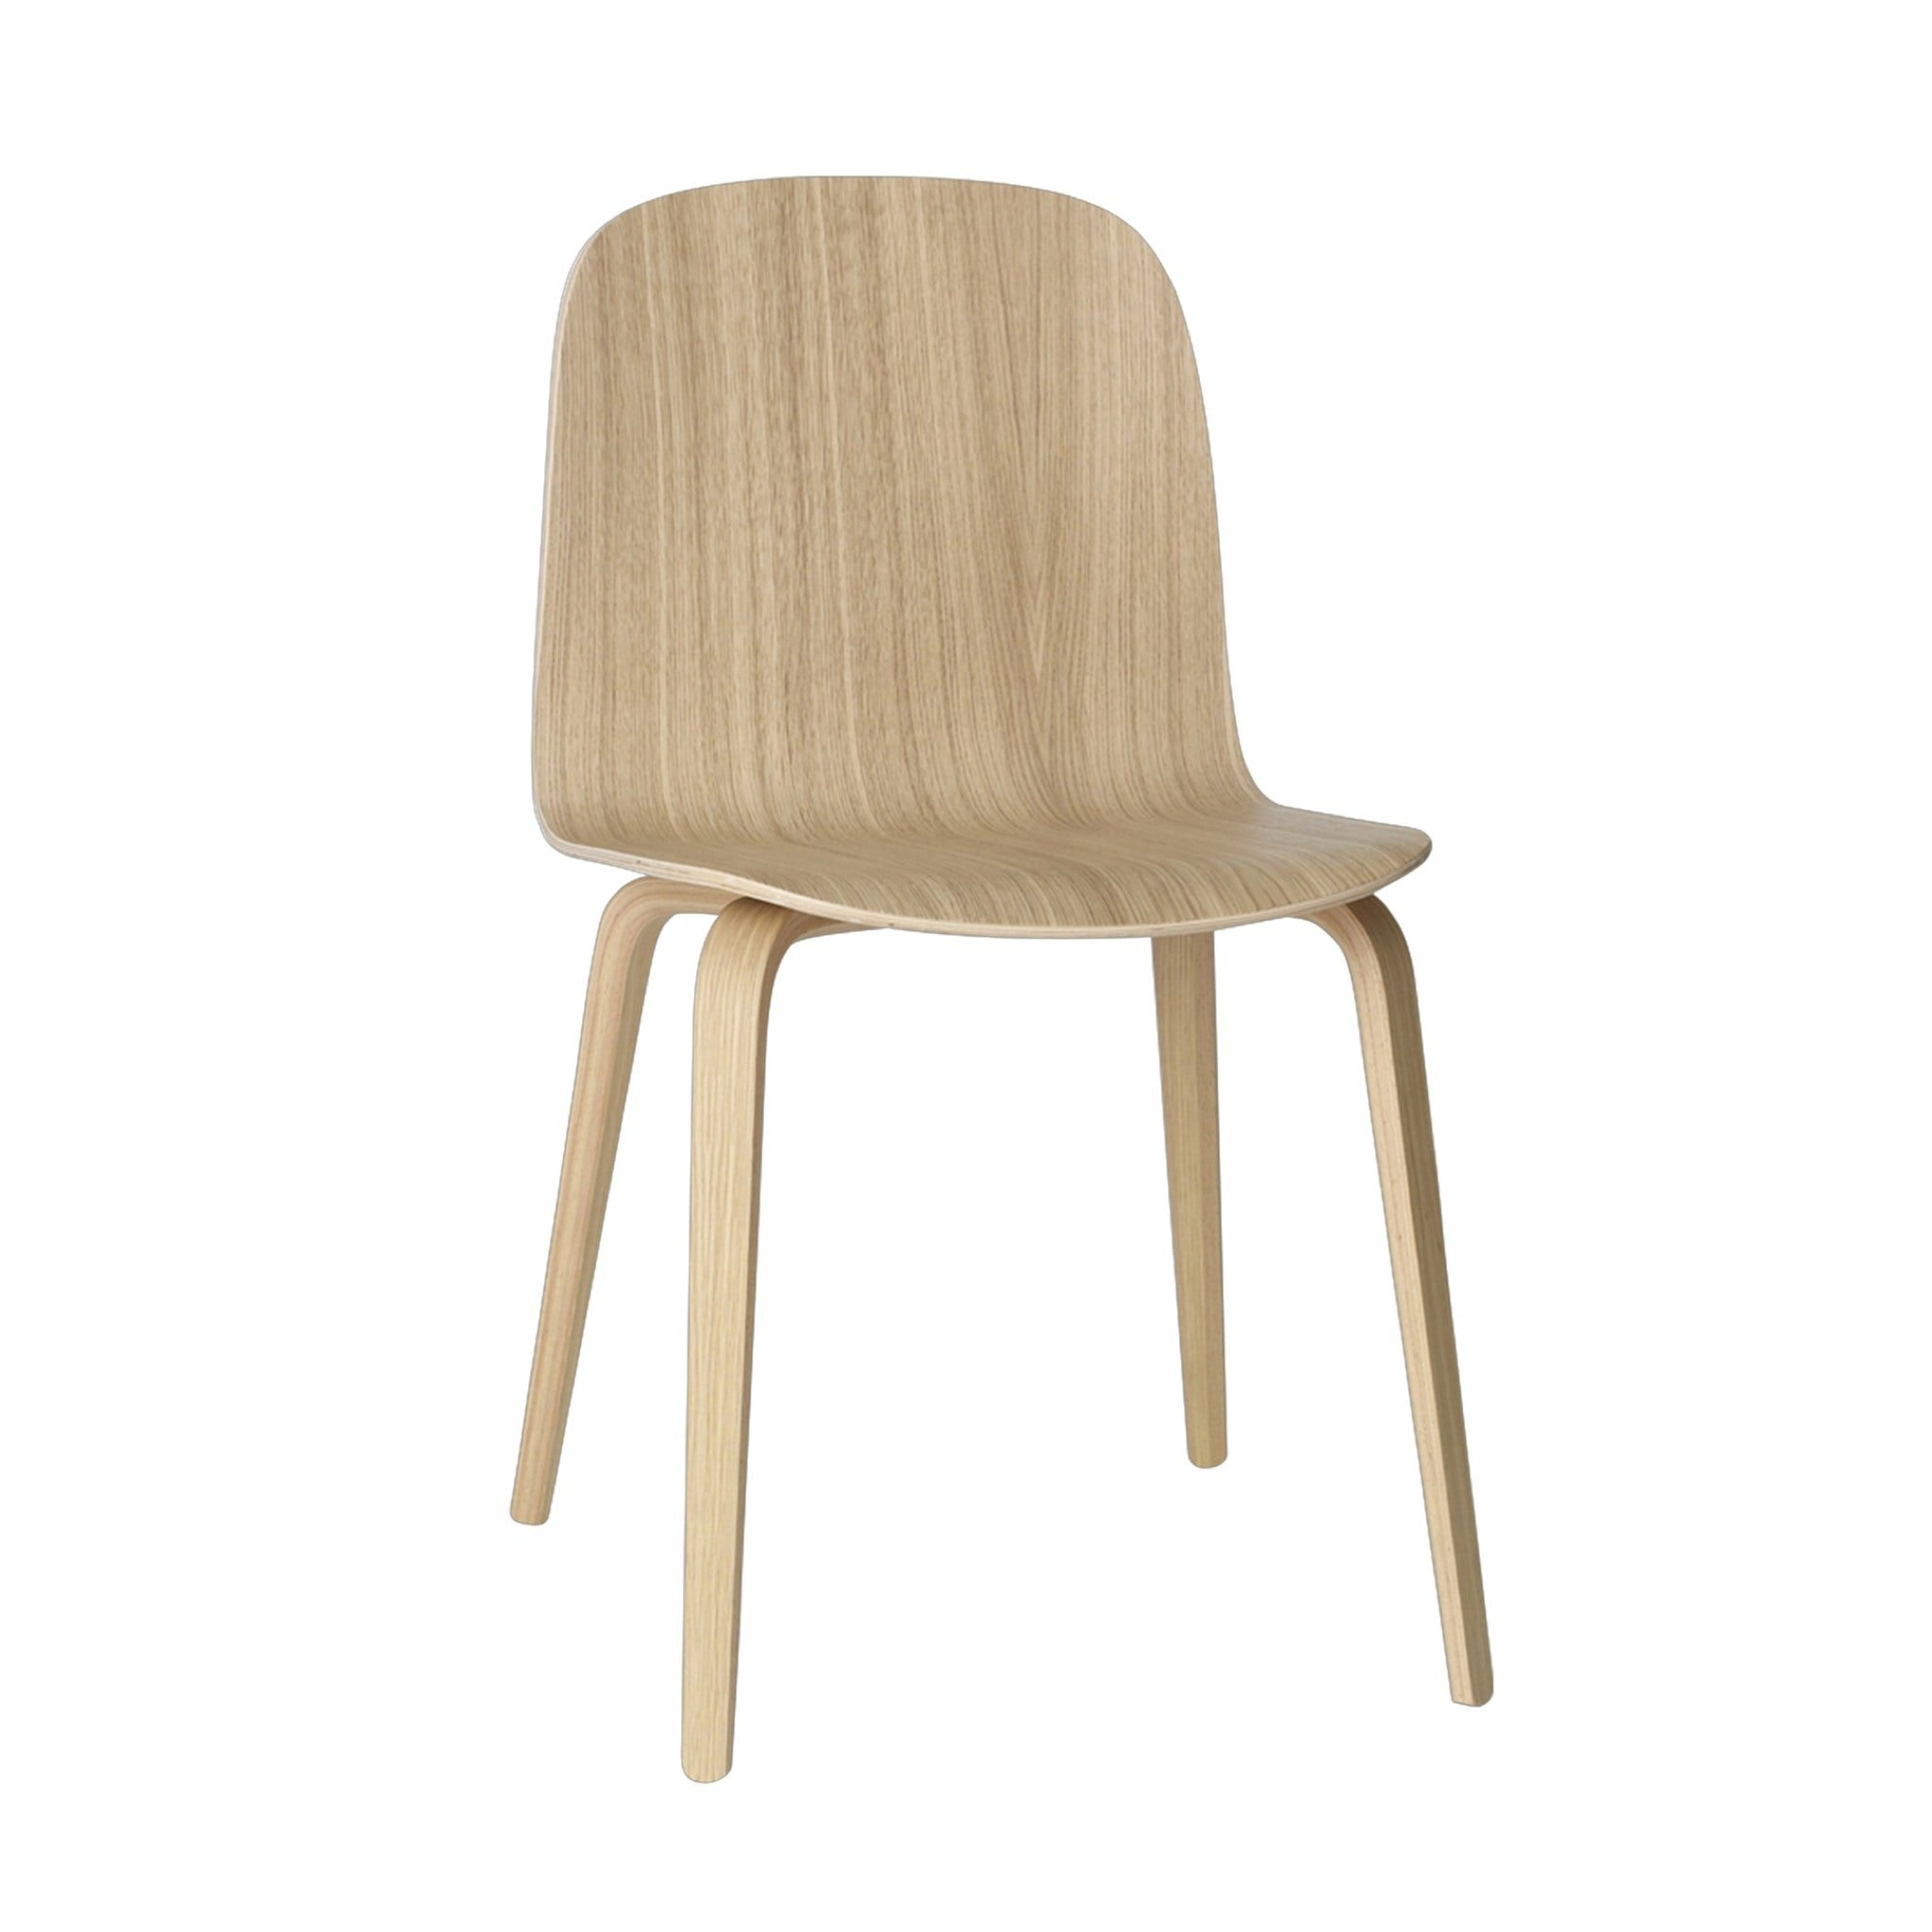 Visu Chair Wooden Frame by Muuto